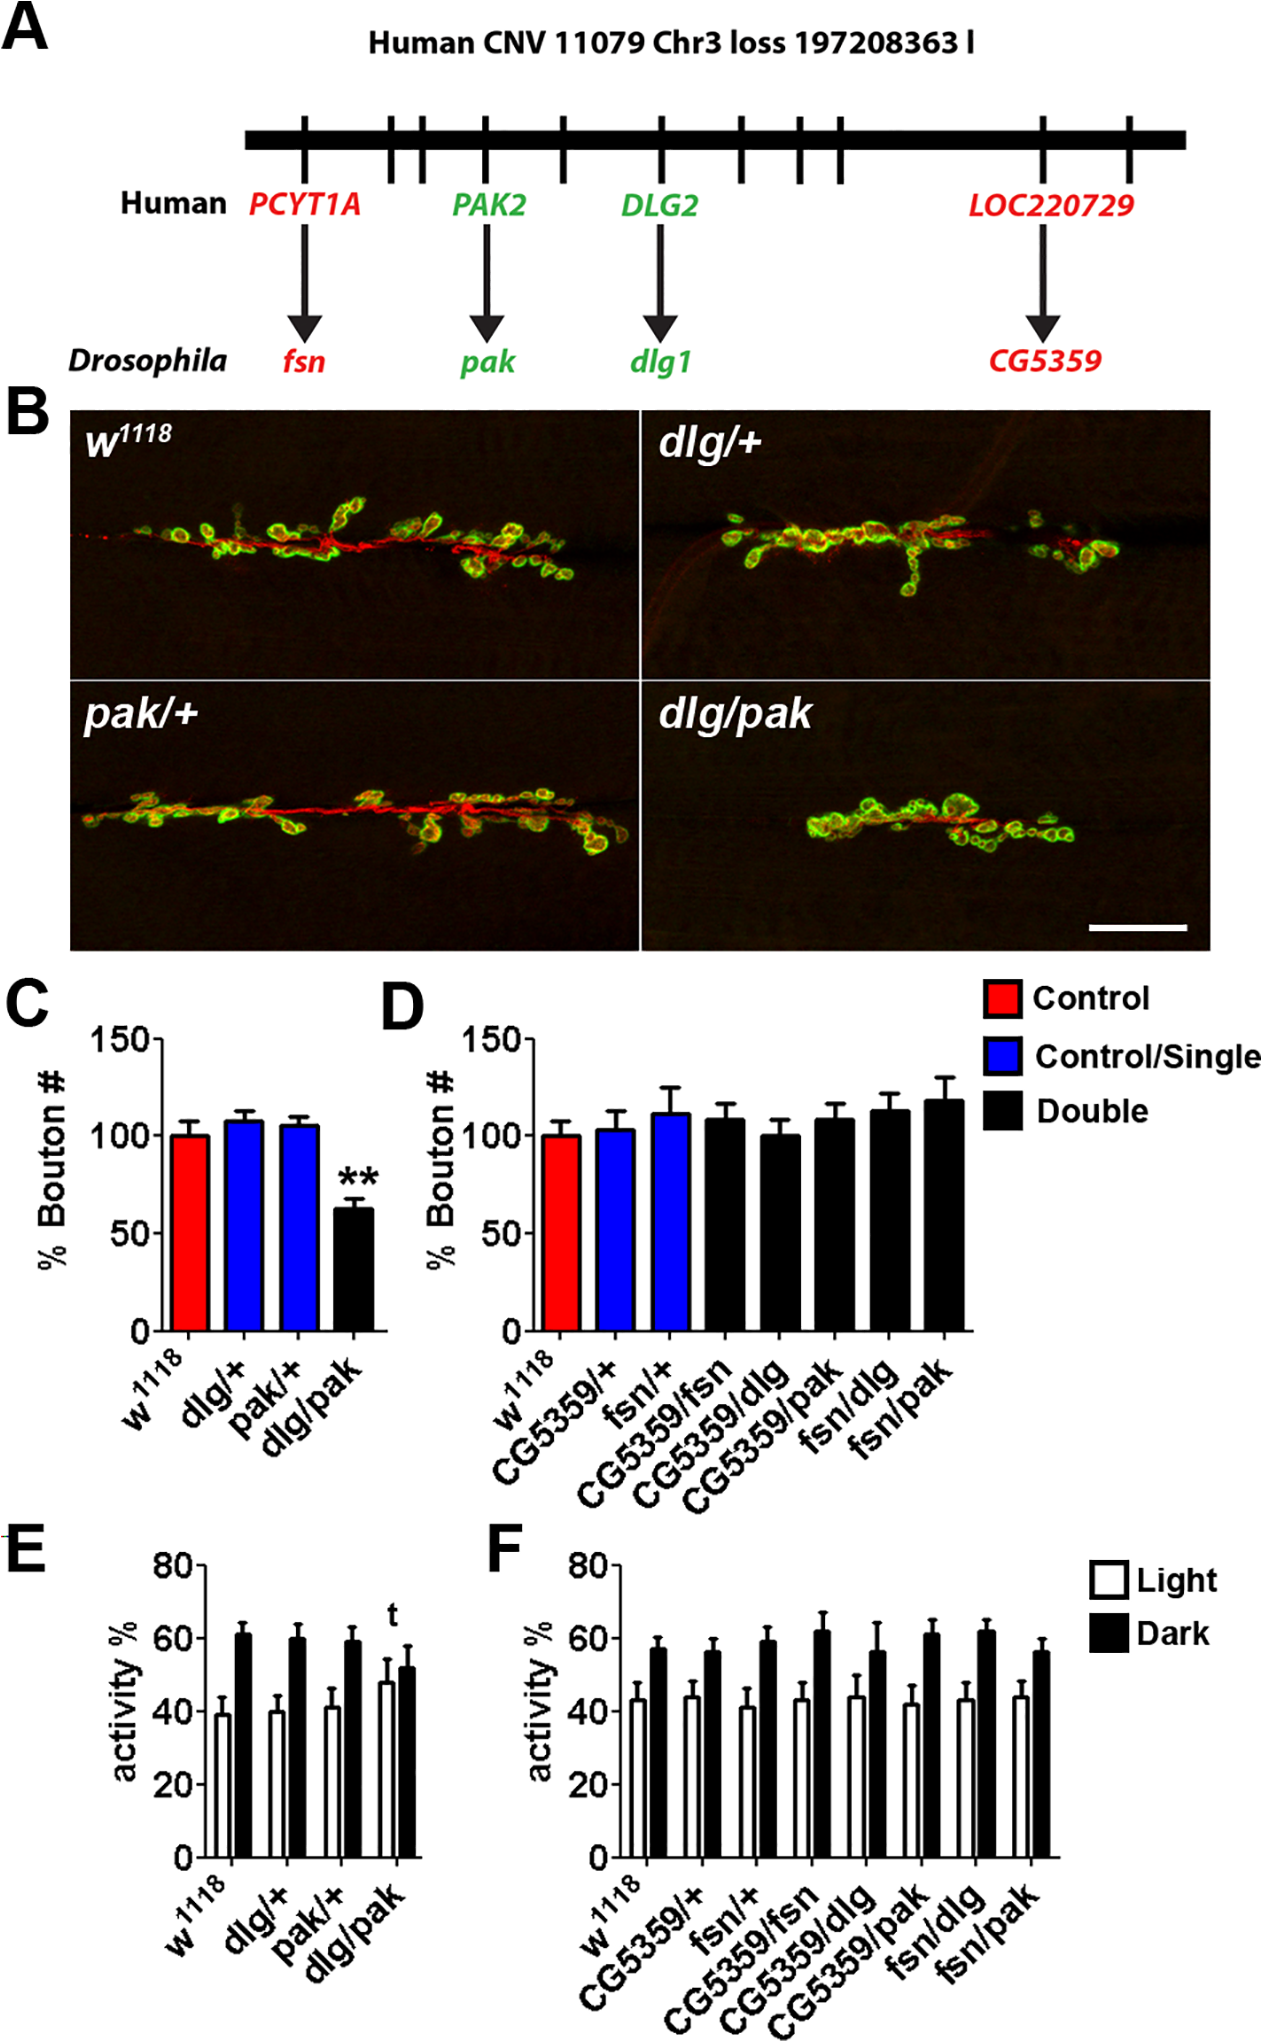 Synergistic interaction in <i>Drosophila</i> between <i>Dlg</i> and <i>Pak</i>, the orthologues of ASD-candidate genes from a <i>de novo</i> loss CNV 11079_chr3_197208363.